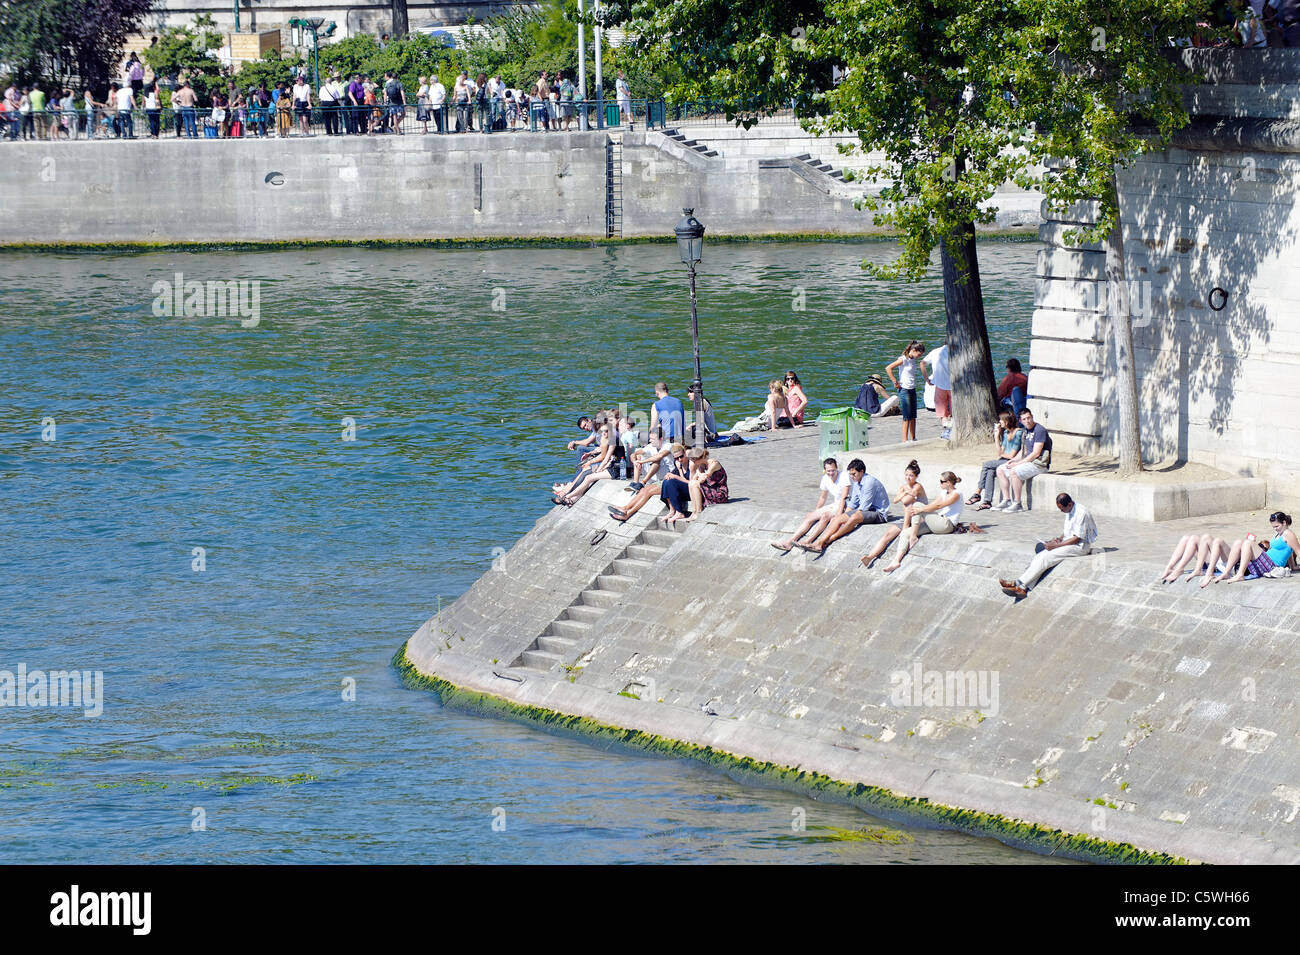 Parisians sunbathing on the banks of the River Seine - Stock Image